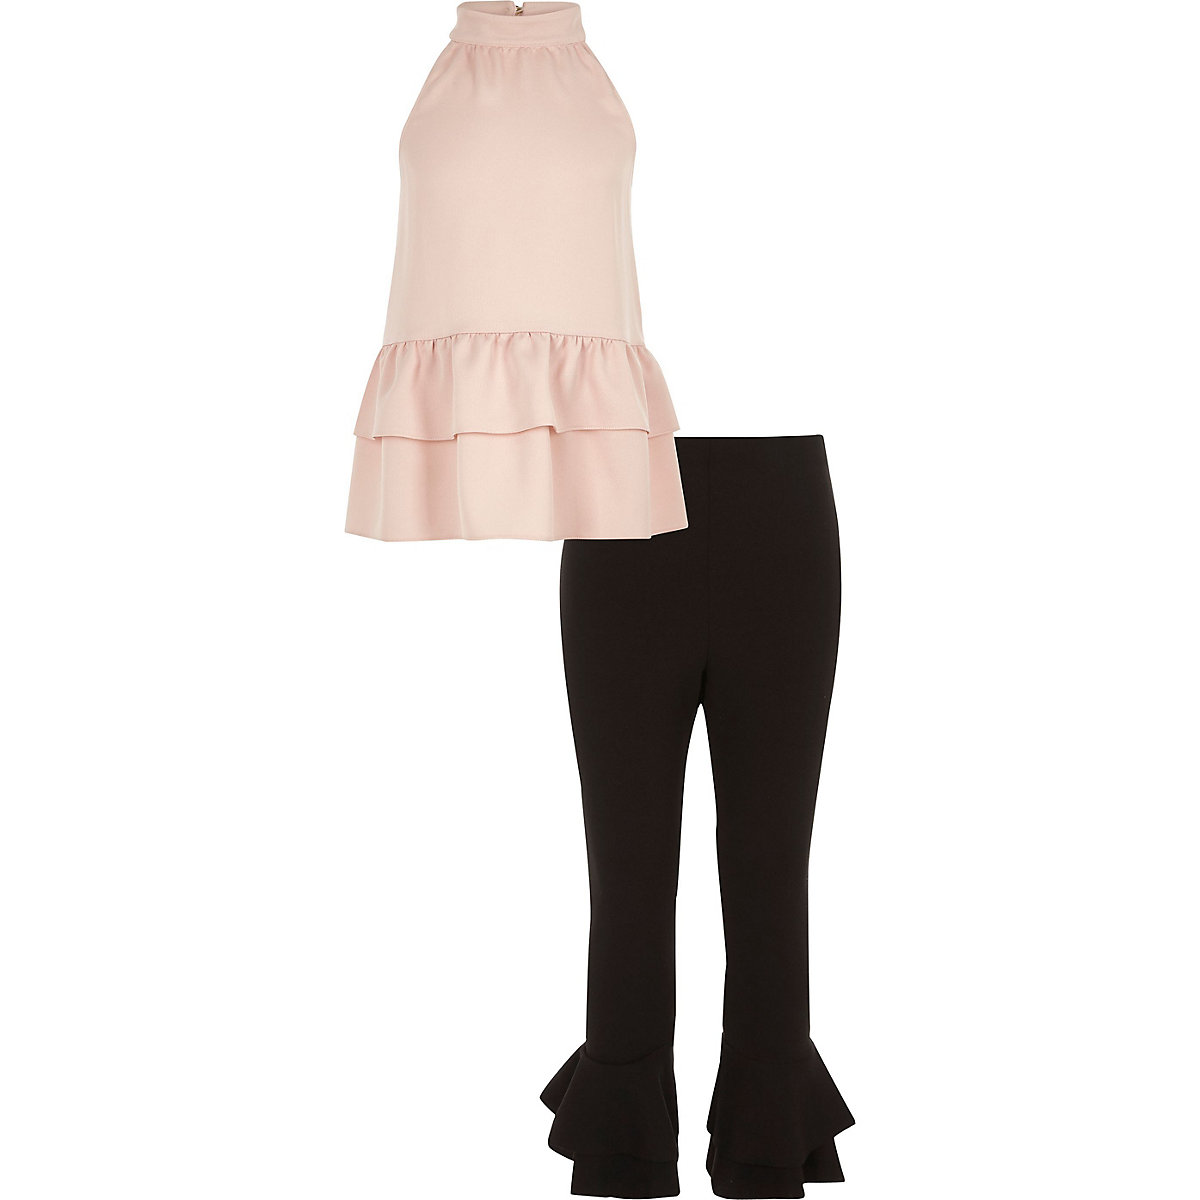 Girls pink high neck top and leggings outfit